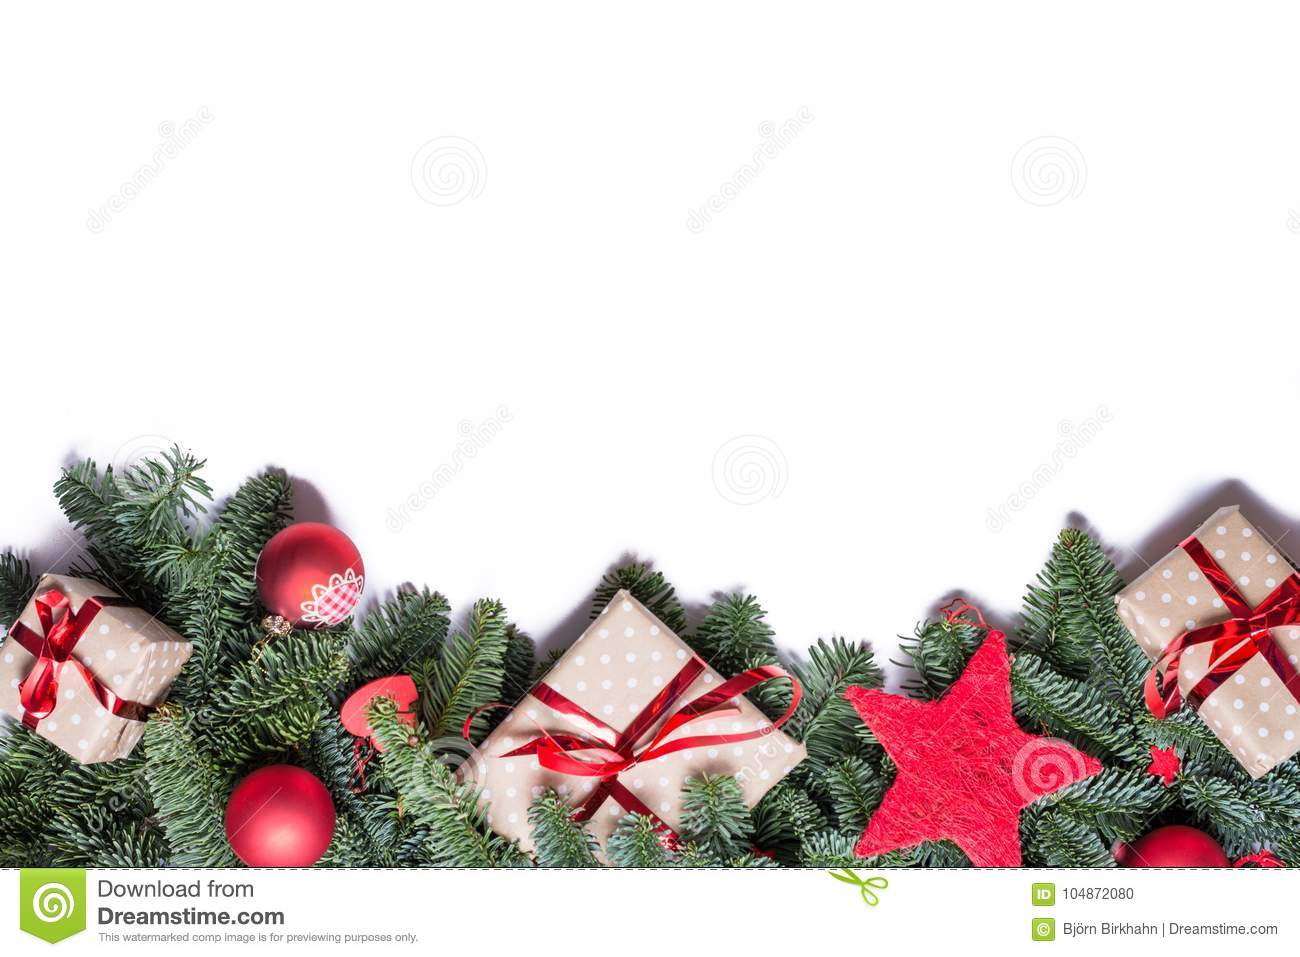 Christmas background border at the bottom with fir branches and